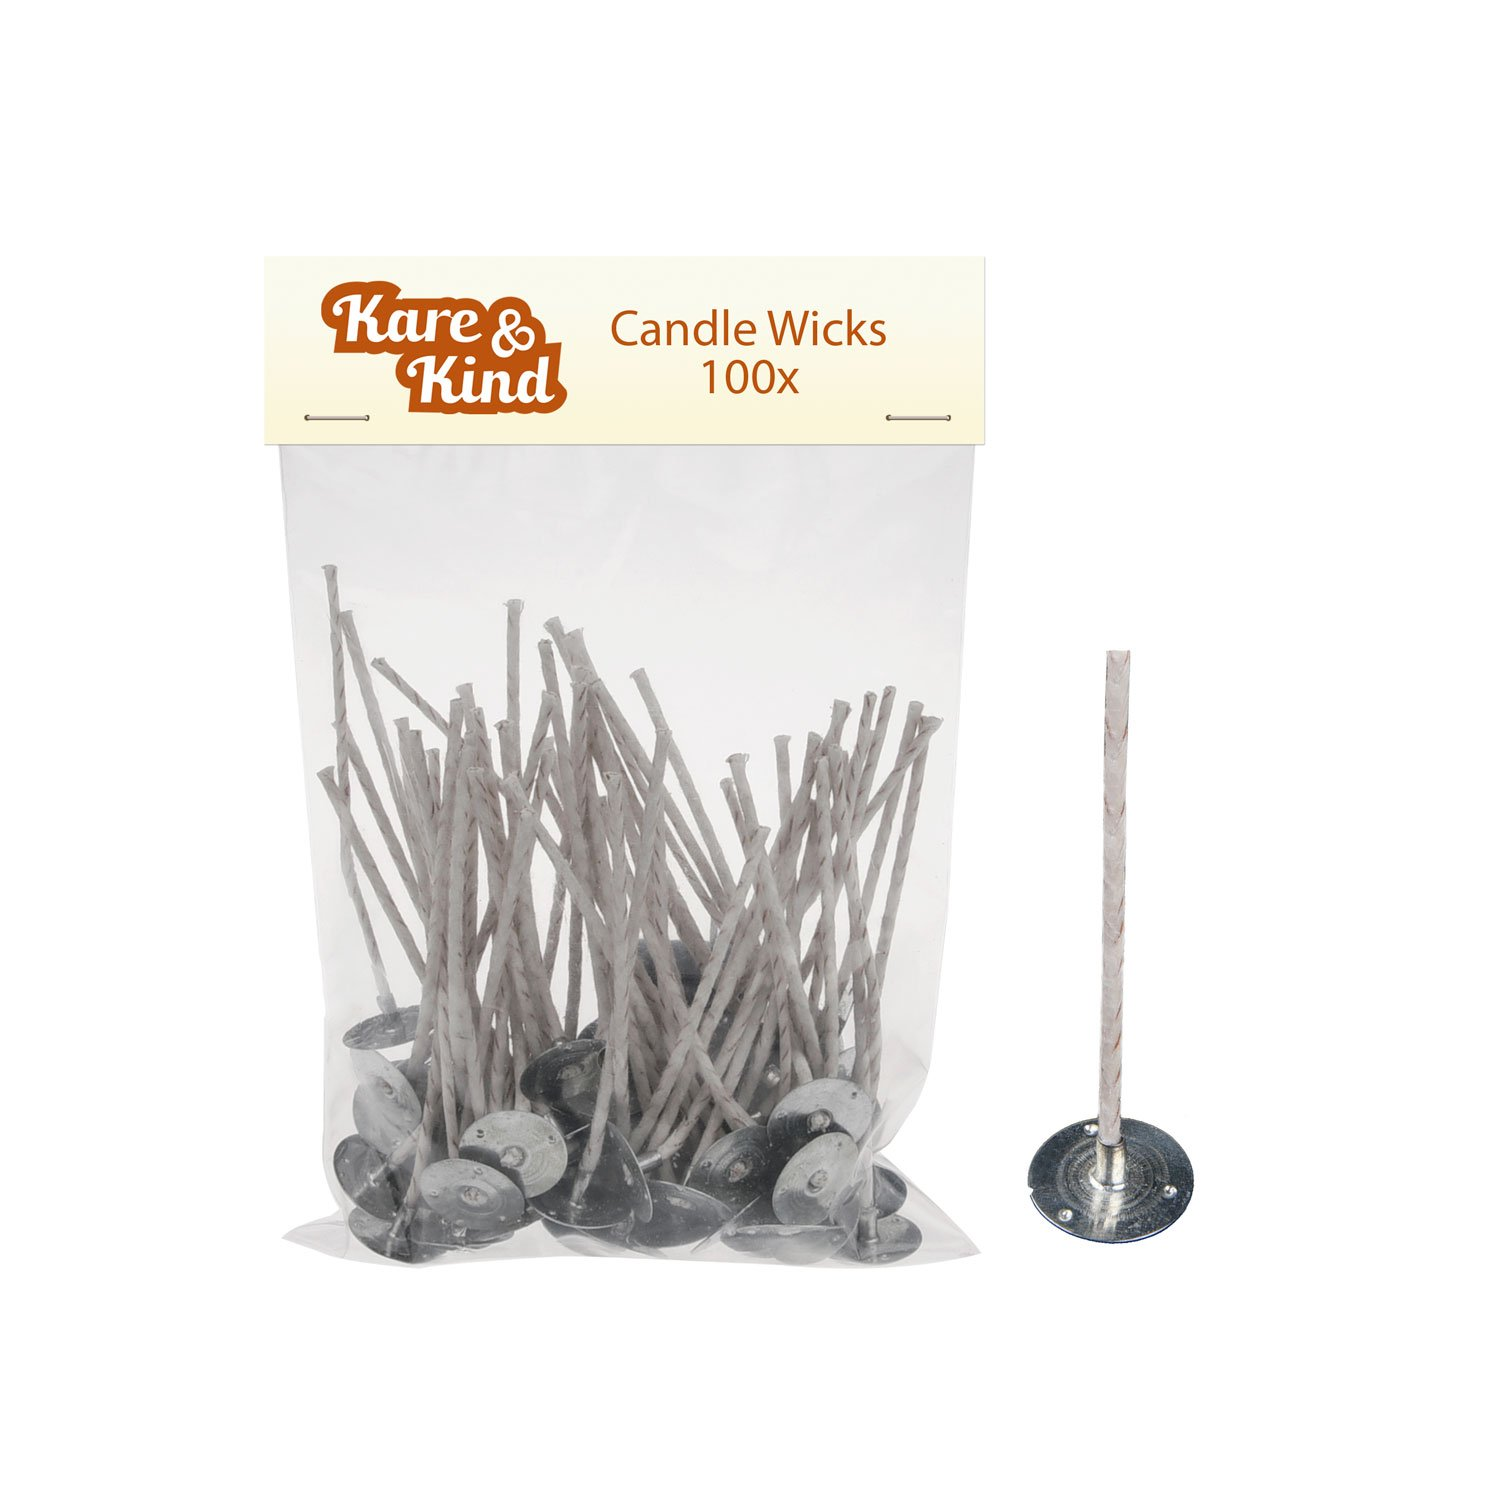 Candle Wicks for Candle Making - 100 Pieces - Coated With Natural Soy Wax, Low Smoke - Cotton Threads Woven with Paper - Contains No Lead, Zinc or Other Metals - Ready to Use